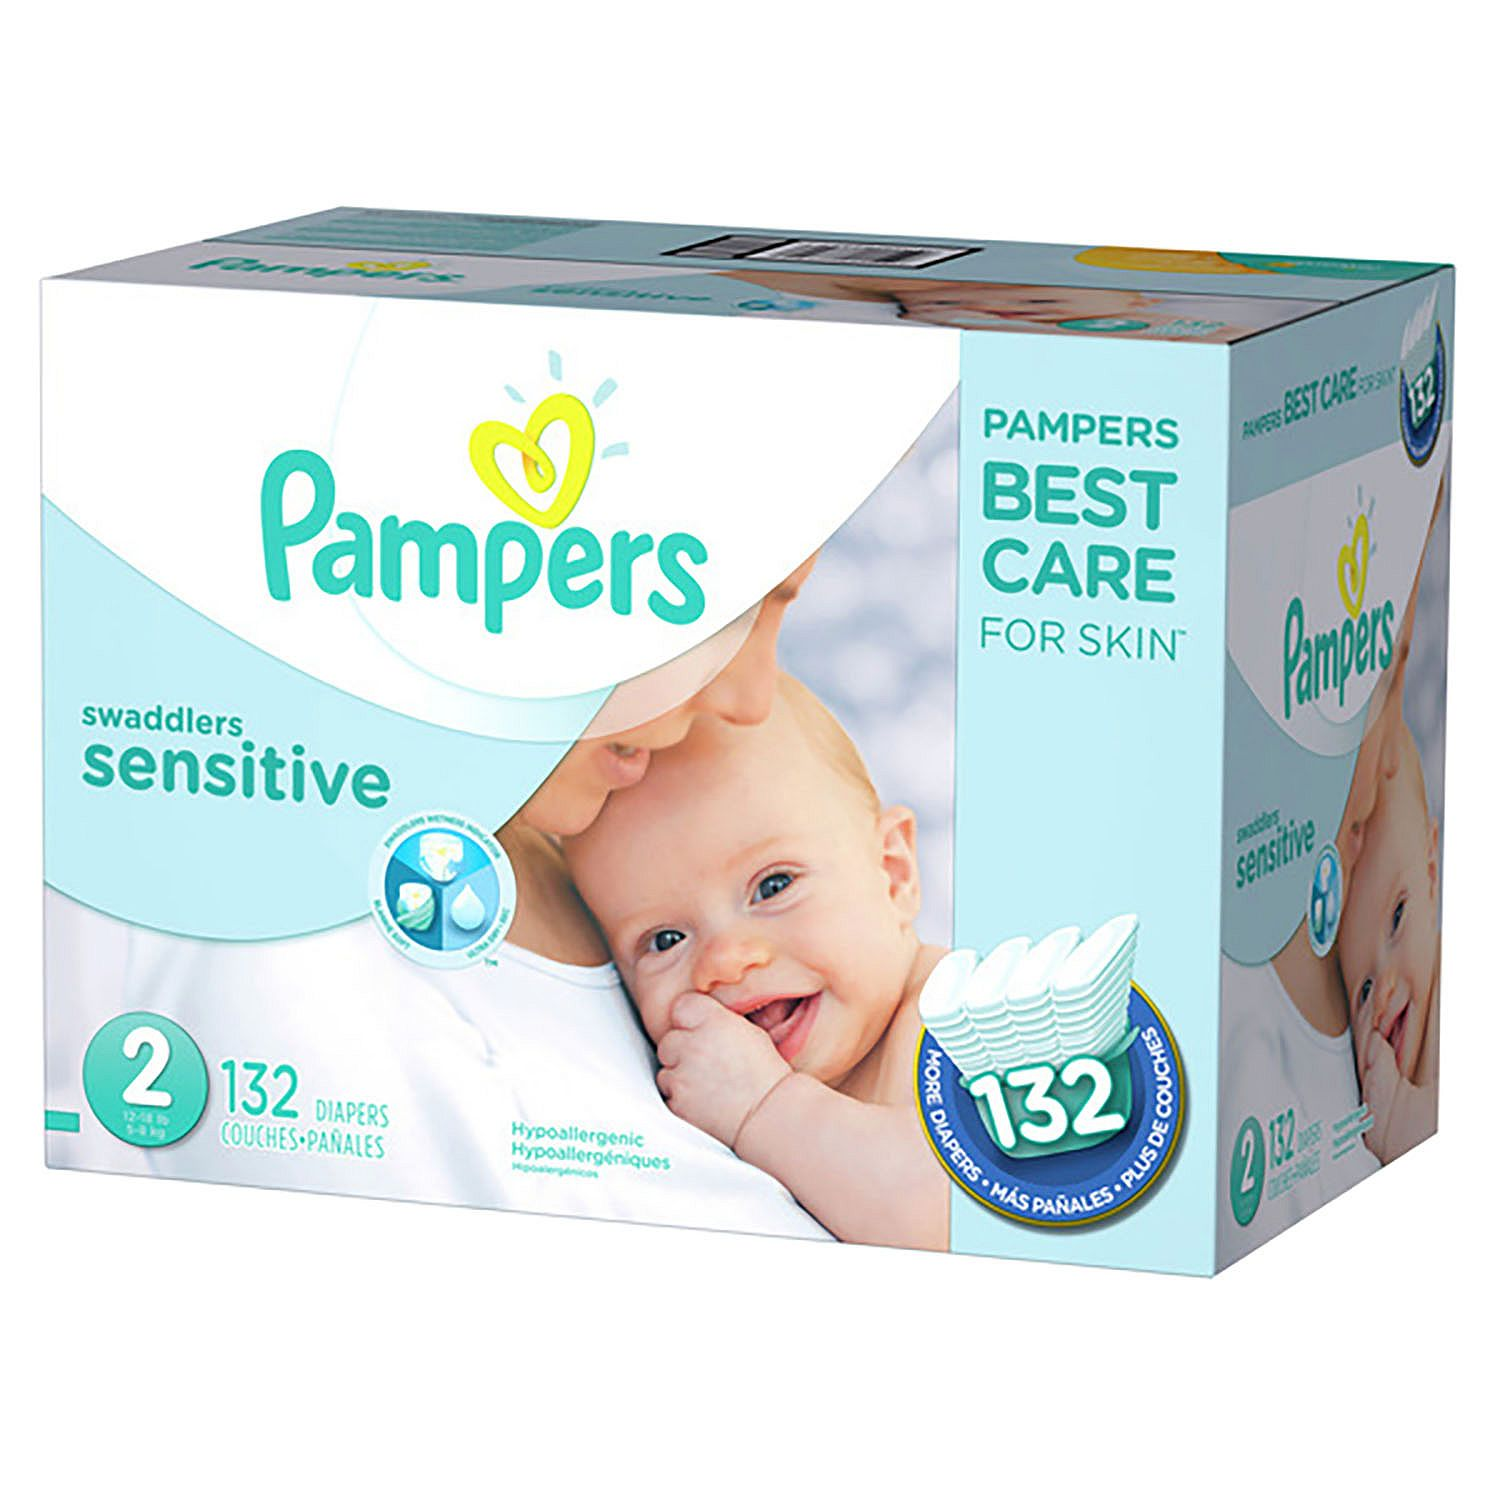 Pampers' Swaddlers Sensitive Diapers Size 2 132 ct. ( Weight 12- 18 lb.) Bulk Qty, Free Shipping Comfortable,... by Branded Diapers